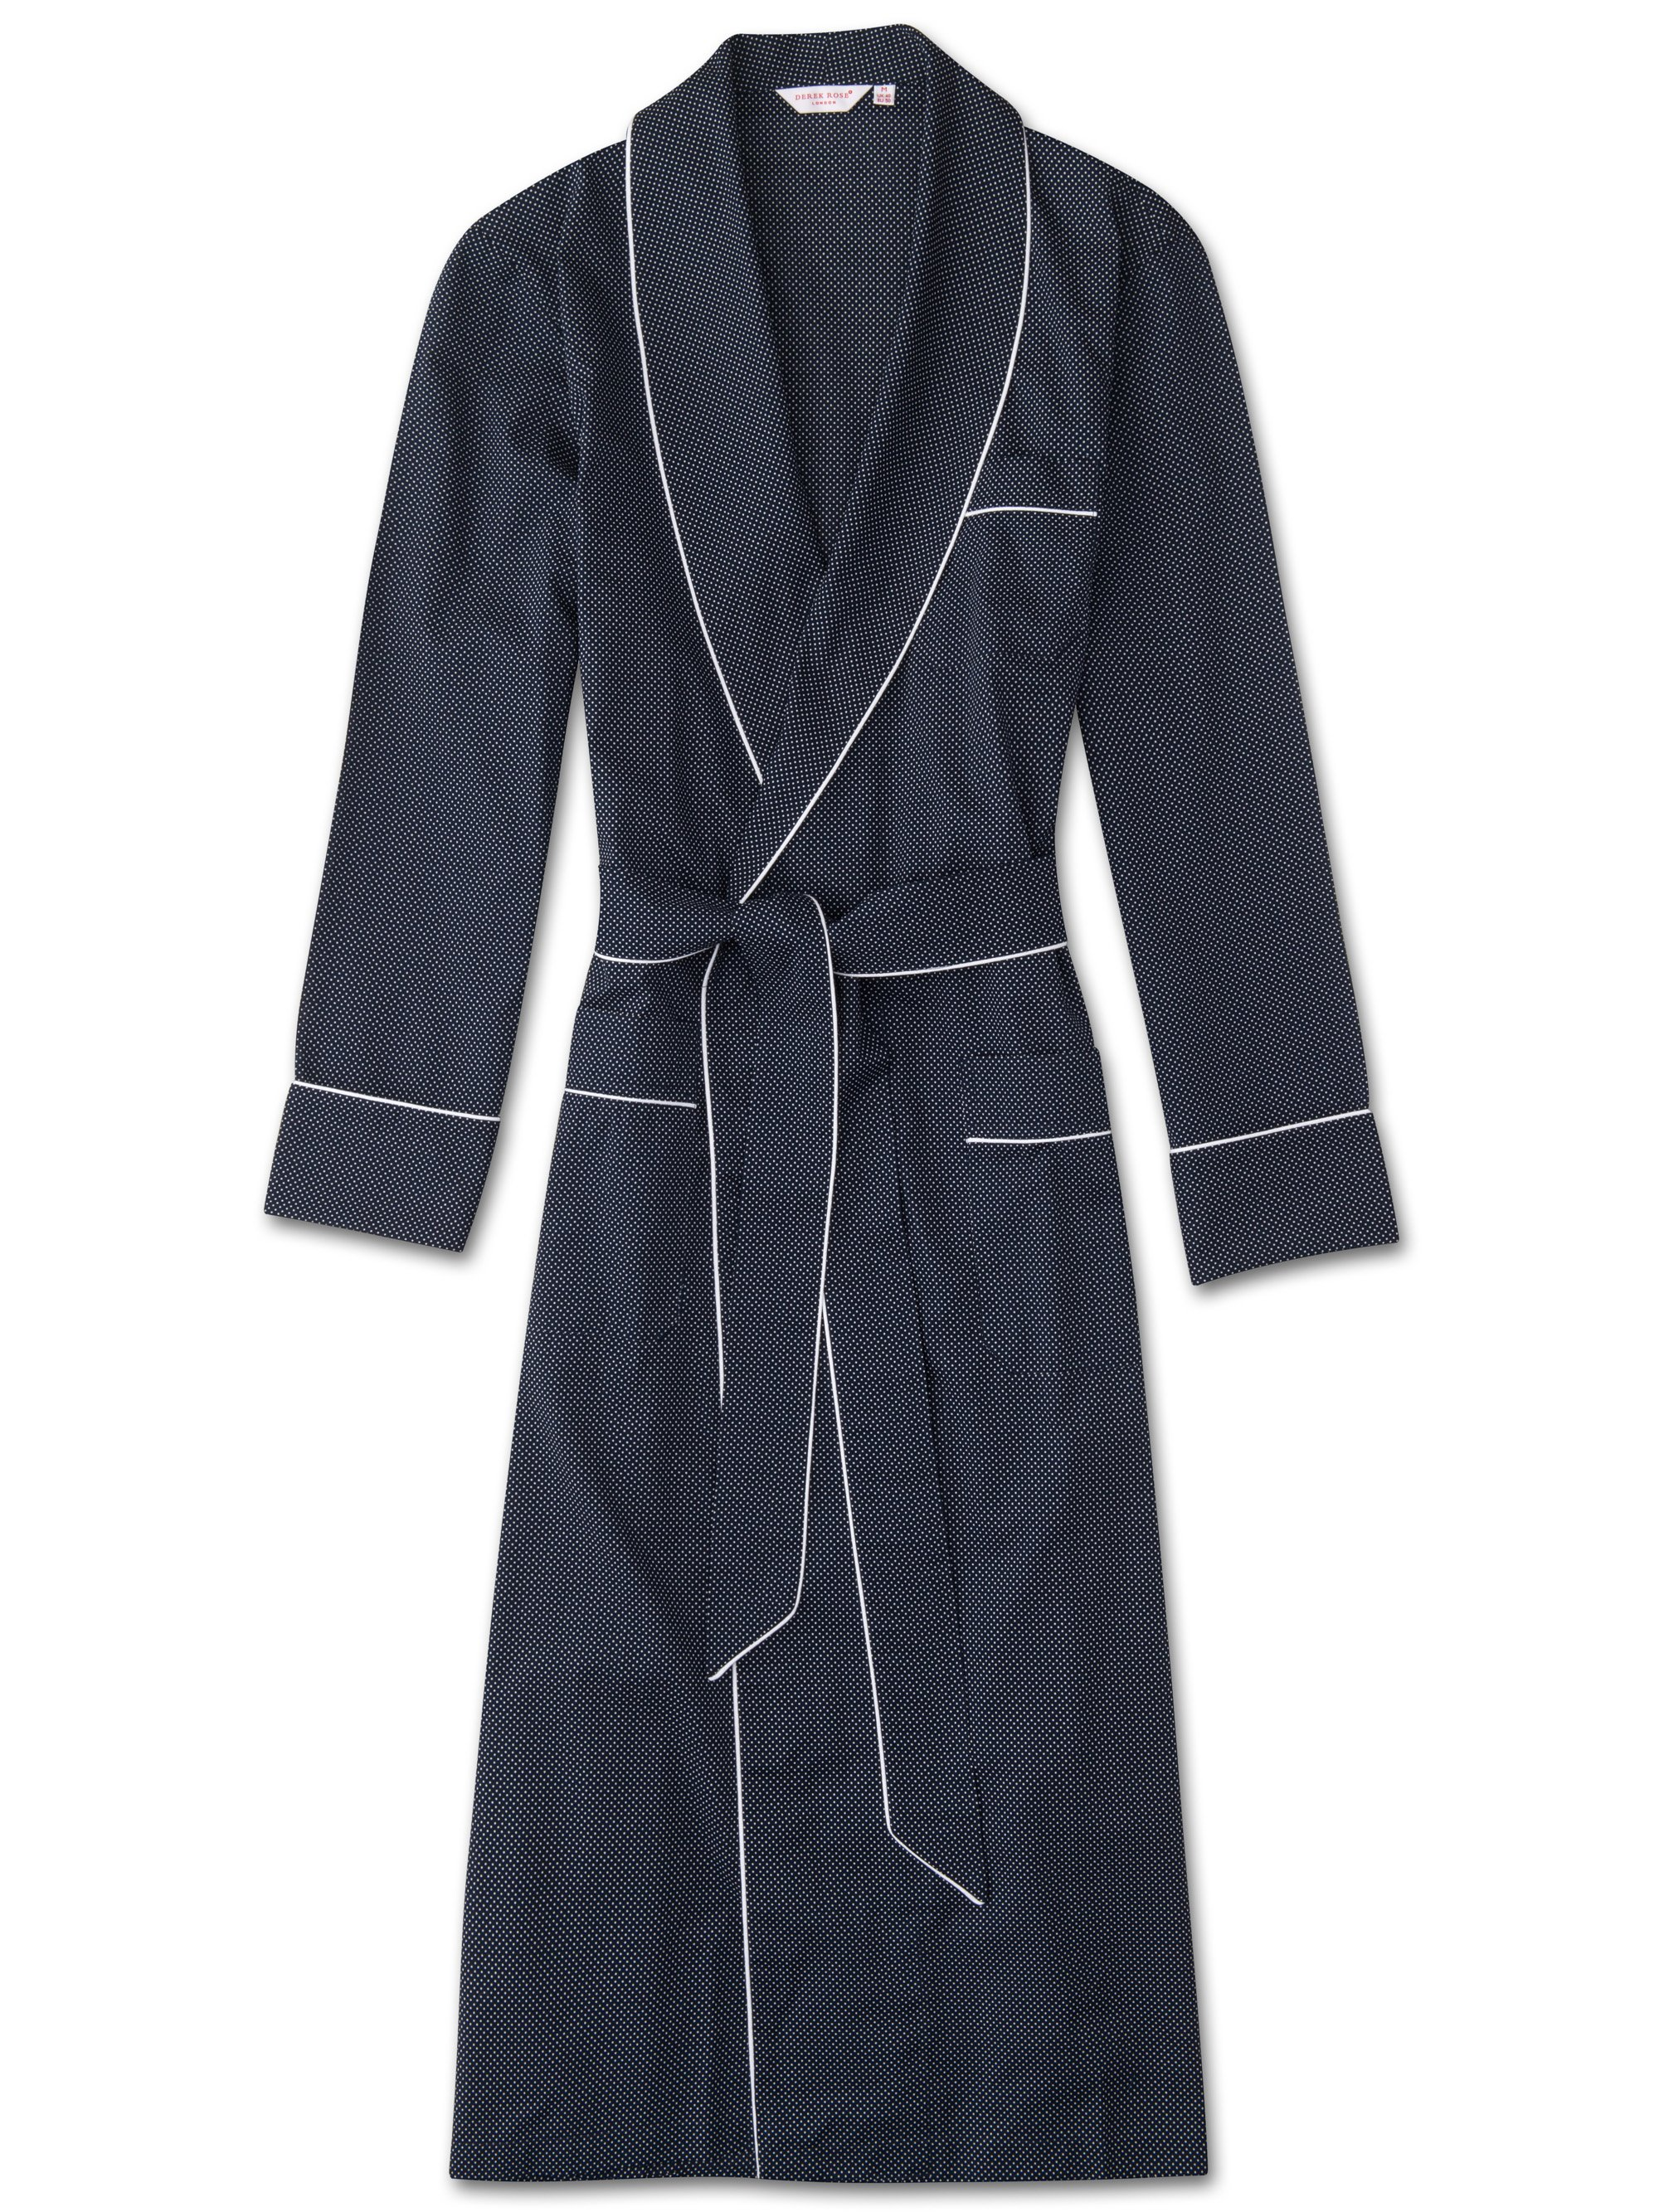 Men's Piped Dressing Gown Plaza 21 Cotton Batiste Polka Dot Navy